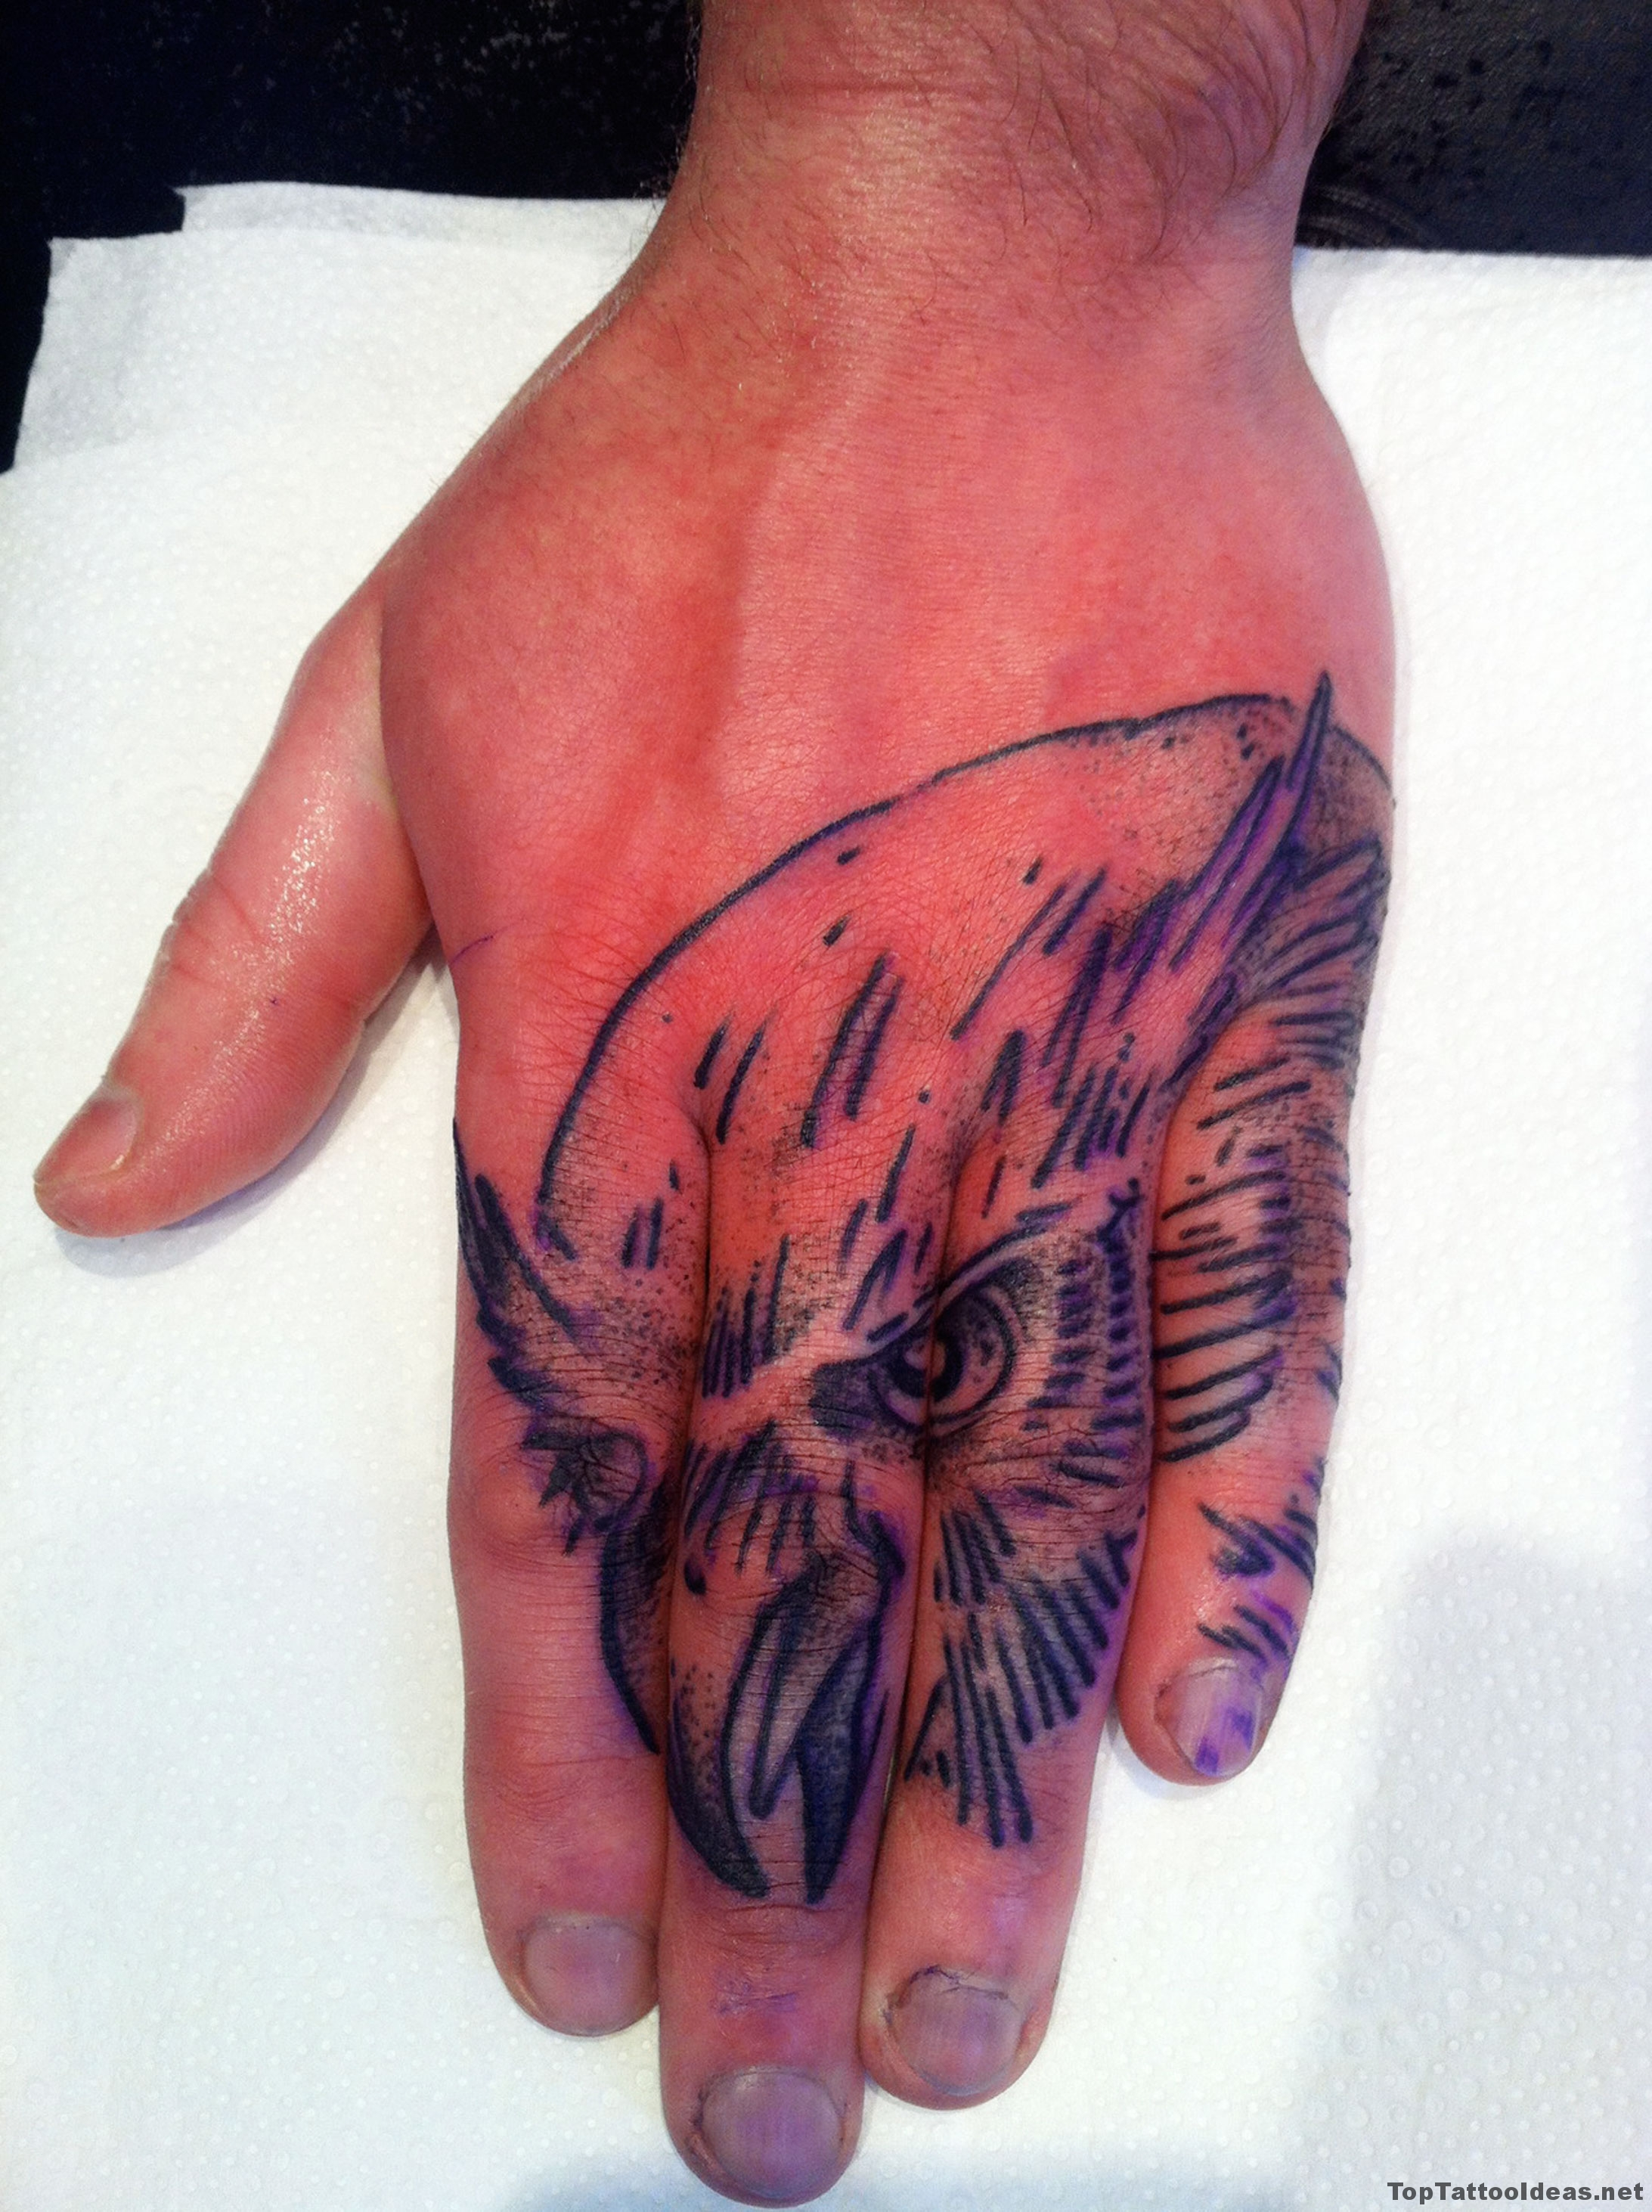 Hawk Hand Tattoo Idea